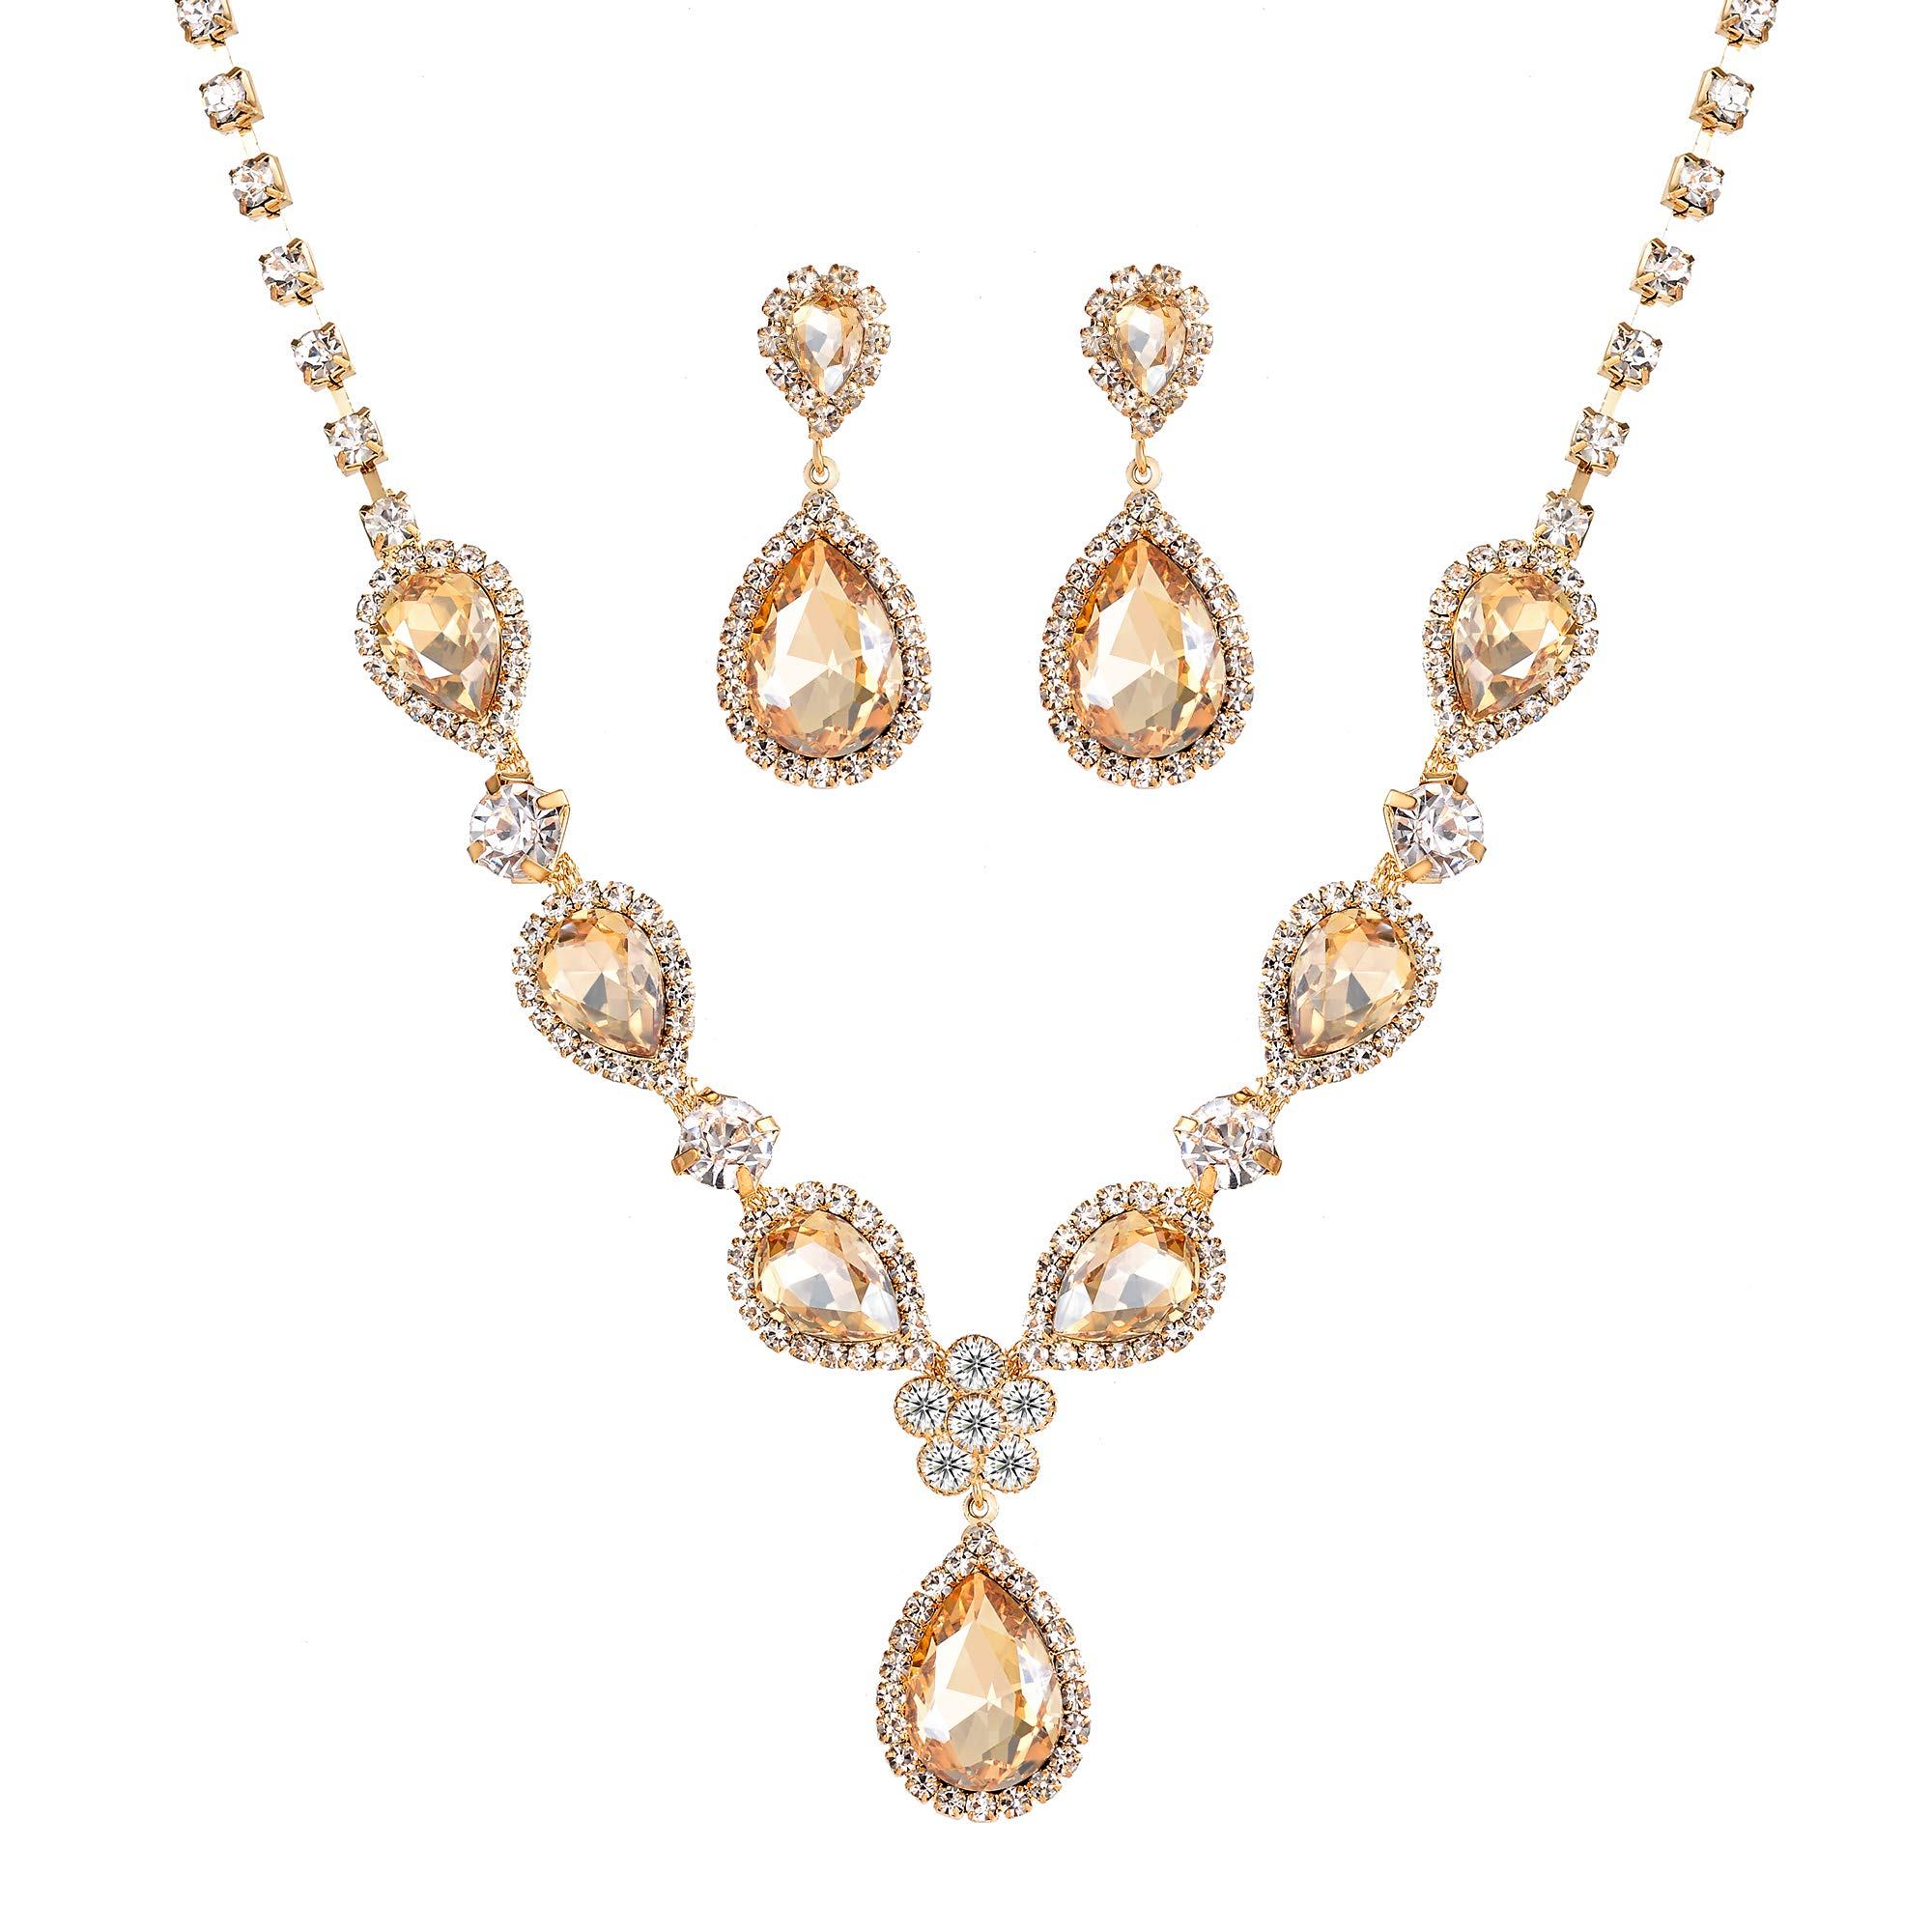 Miraculous Garden Bridal Gold Plated Teardrop Crystal Necklace and Earrings Jewelry Set Gifts fit with Wedding Dress